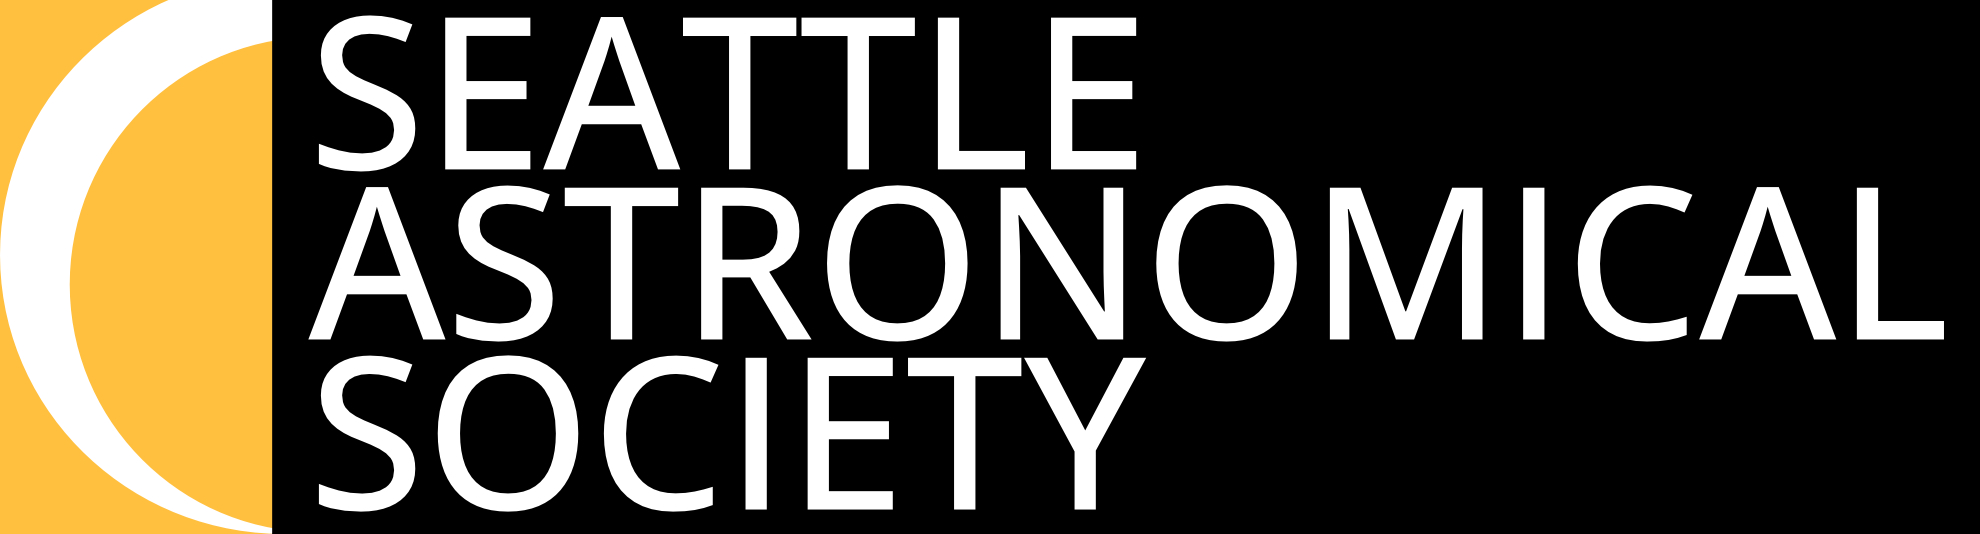 Seattle Astronomical Society